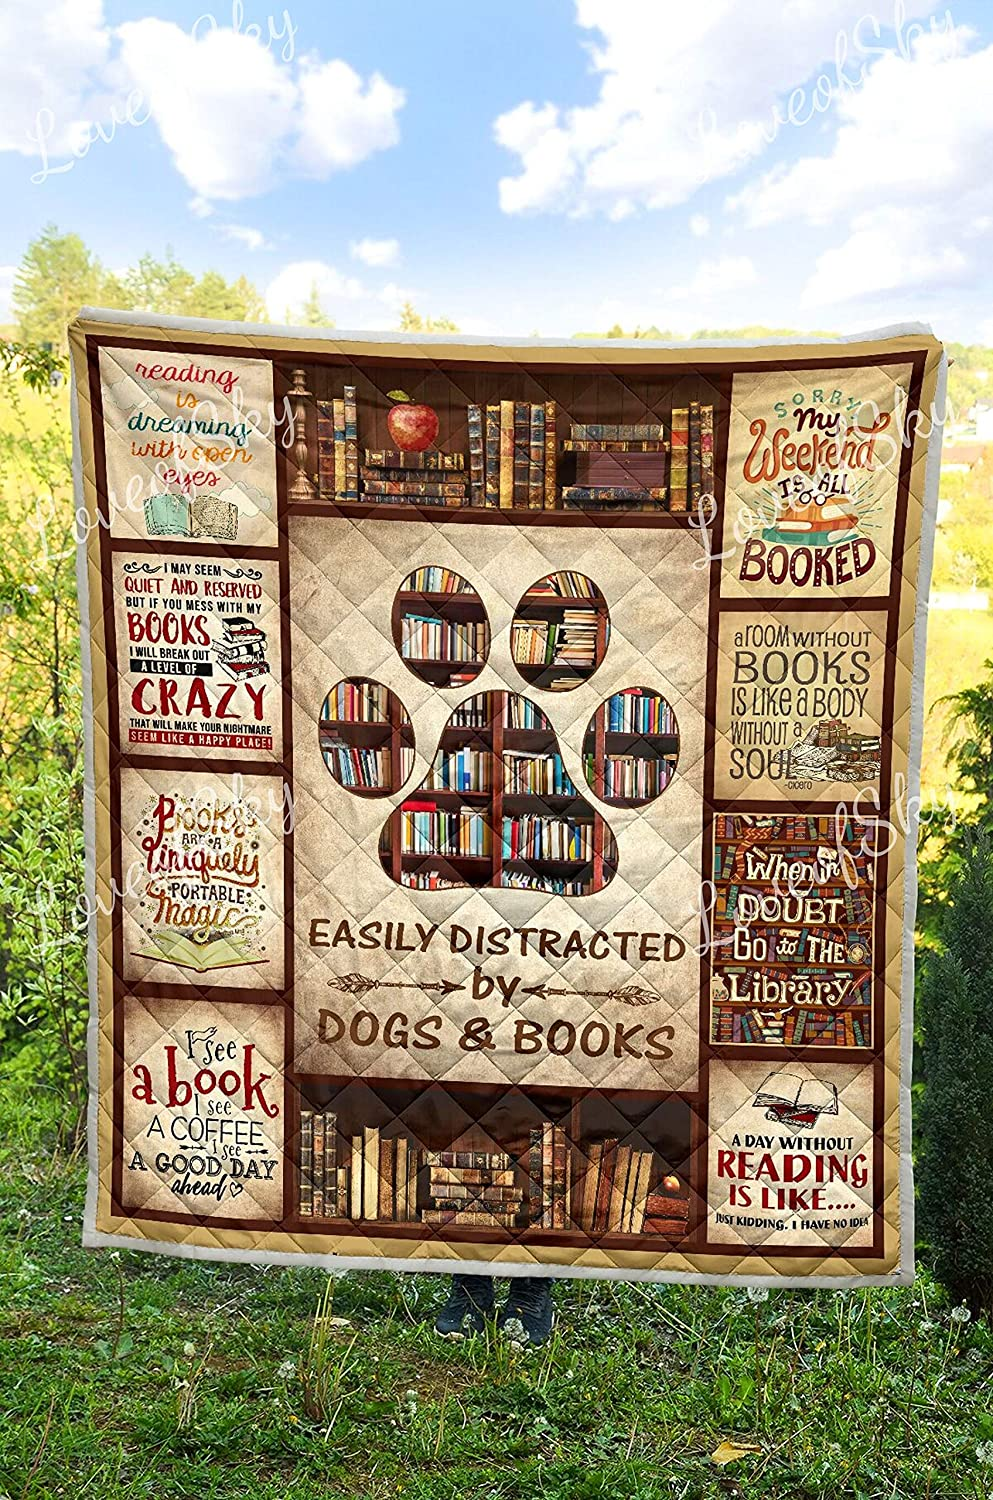 Gifts Best Decorative Unique Banklet for Traveling All Season Comforter with Cotton Quilts Picnics LoveofSky Librarian Easily Distracted by Dogs and Books Quilt Twin Size Beach Trips